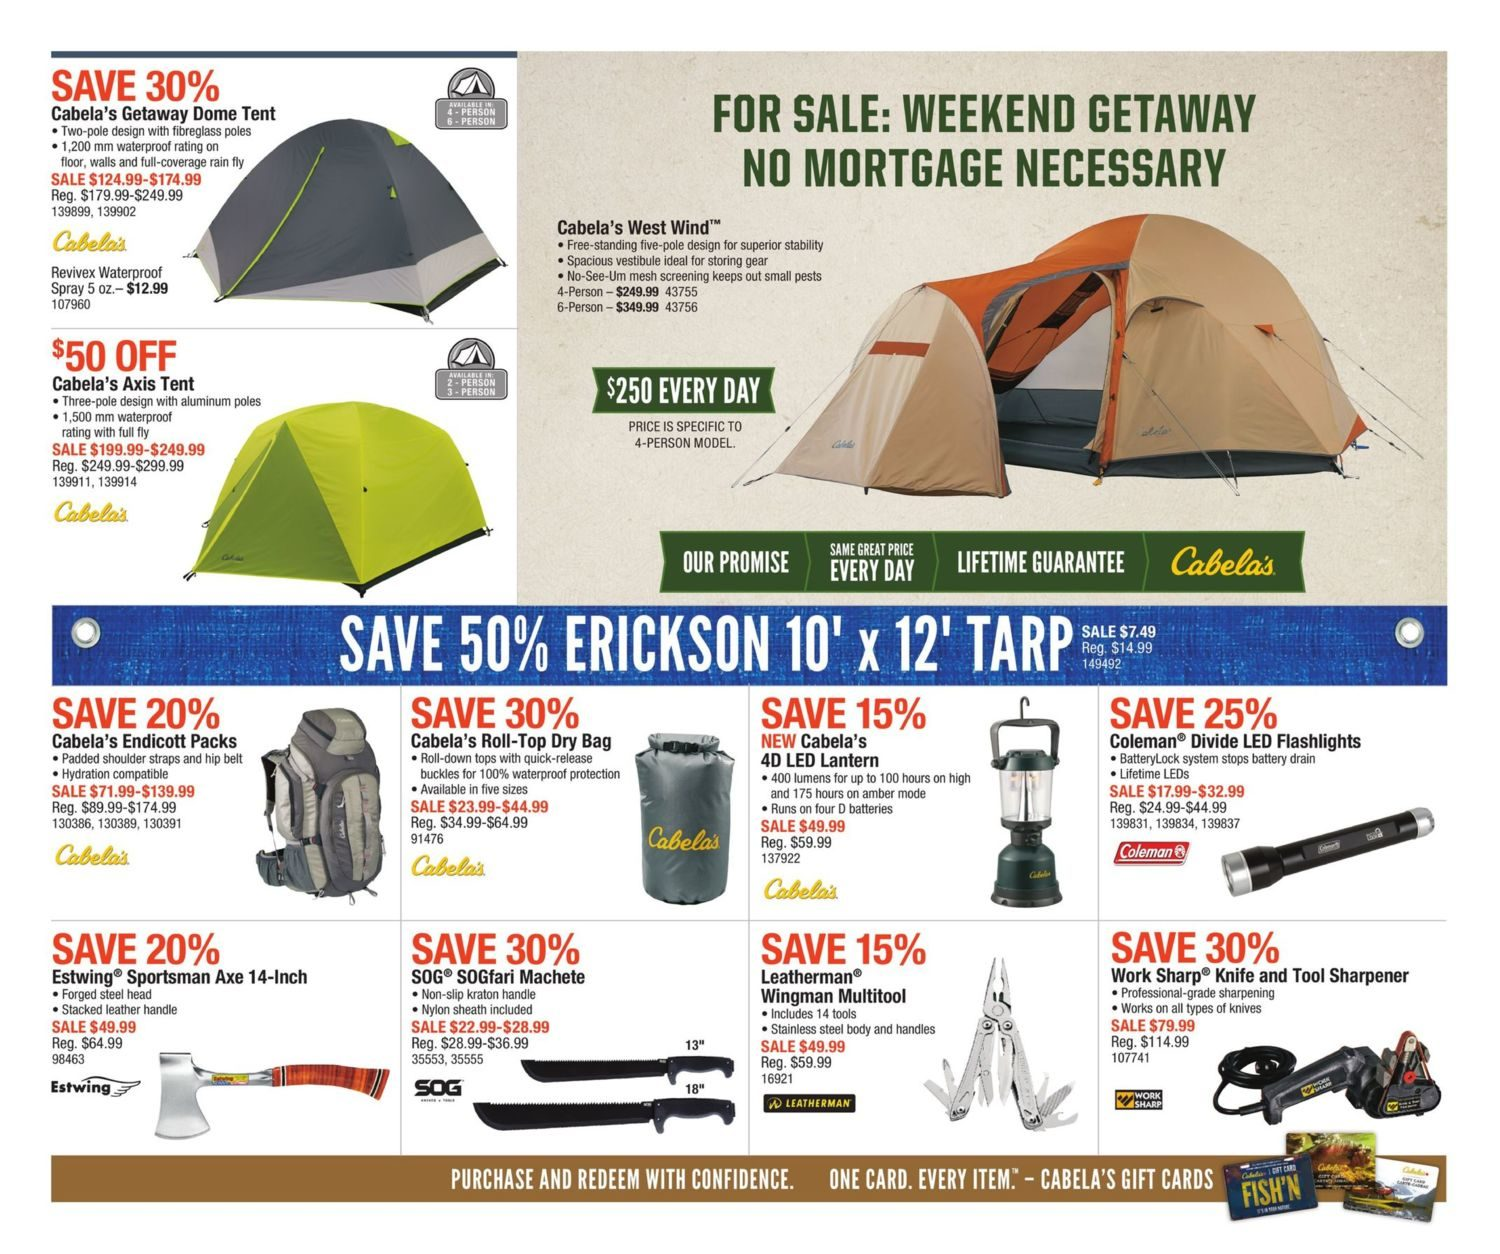 Cabelas Weekly Flyer - Tent and Tackle - May 11 u2013 24 - RedFlagDeals.com  sc 1 st  RedFlagDeals.com & Cabelas Weekly Flyer - Tent and Tackle - May 11 u2013 24 ...